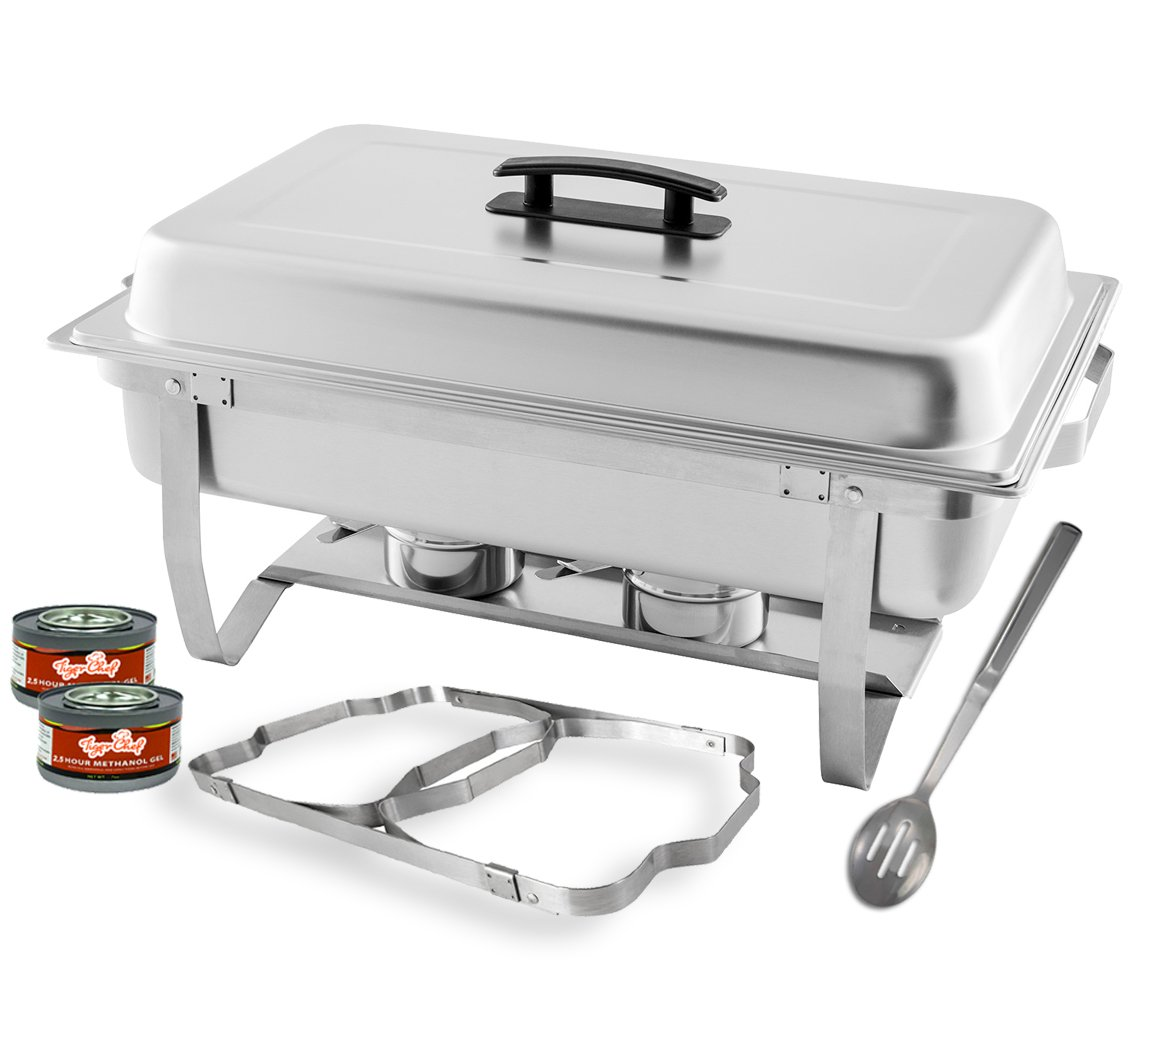 TigerChef 8 Quart Full Size Stainless Steel Chafer with Folding Frame and Cool-Touch Plastic on top - Includes 2 Free Chafing Gels and Slotted Serving Spoon (1, 8 Quart Chafer)...